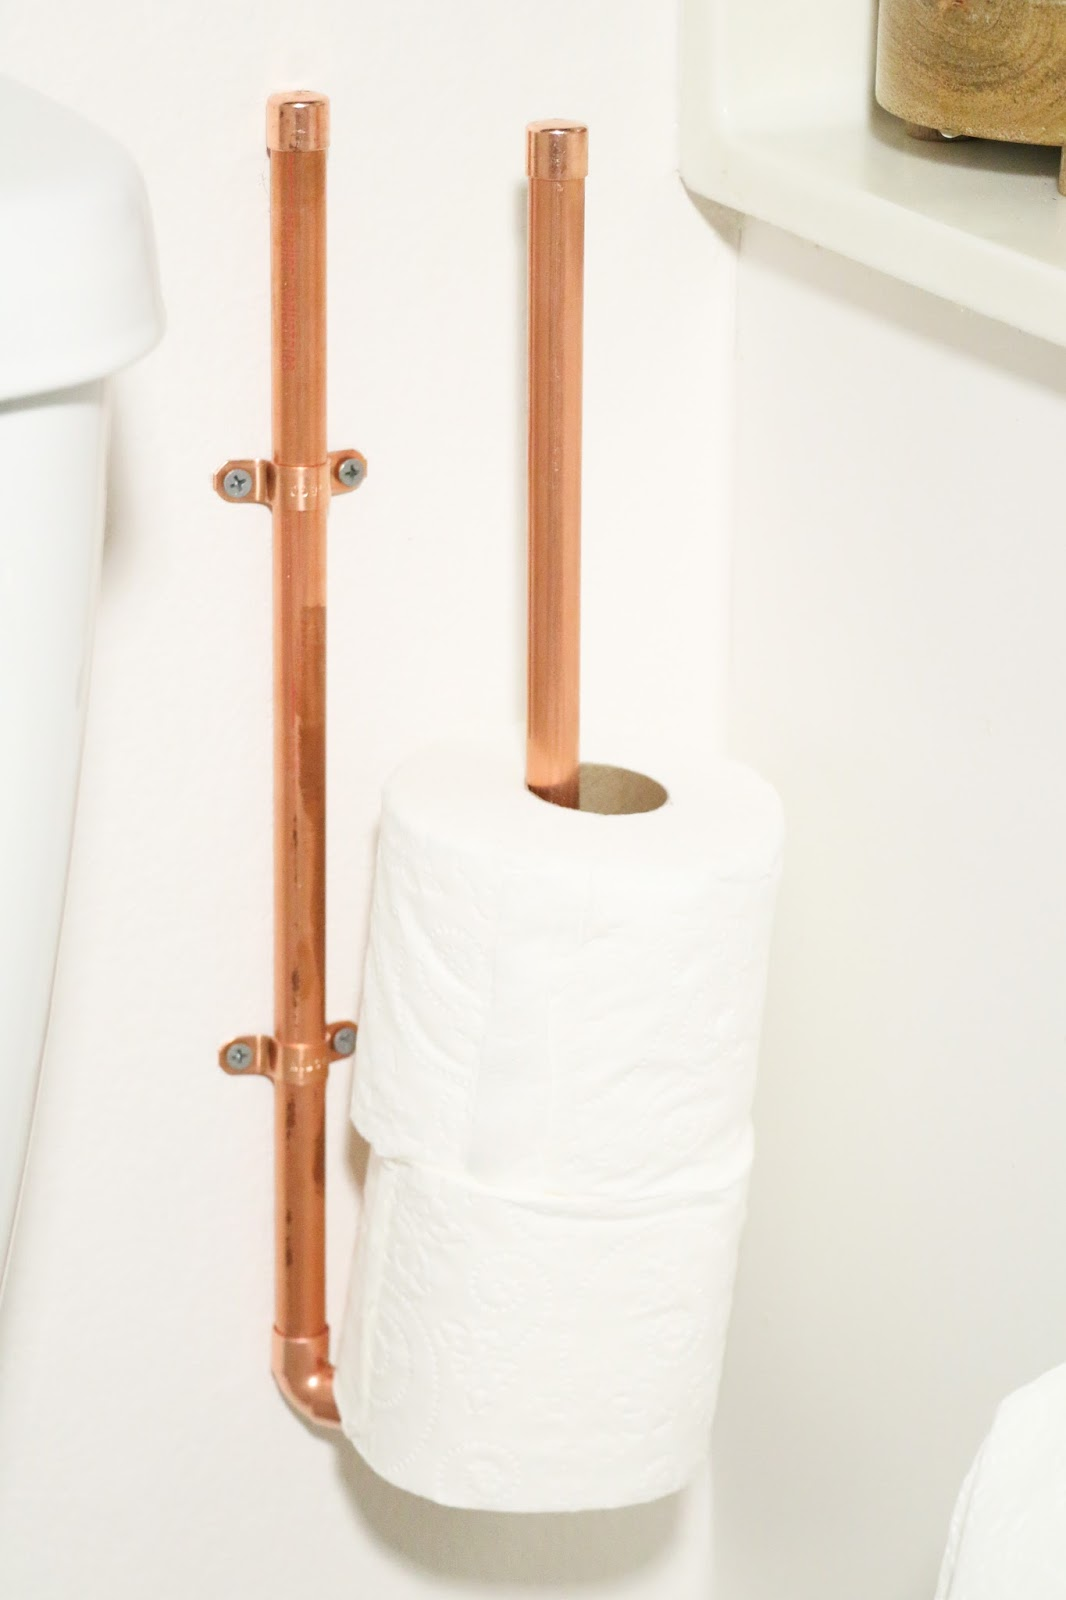 diy it copper toilet paper holders a kailo chic life. Black Bedroom Furniture Sets. Home Design Ideas